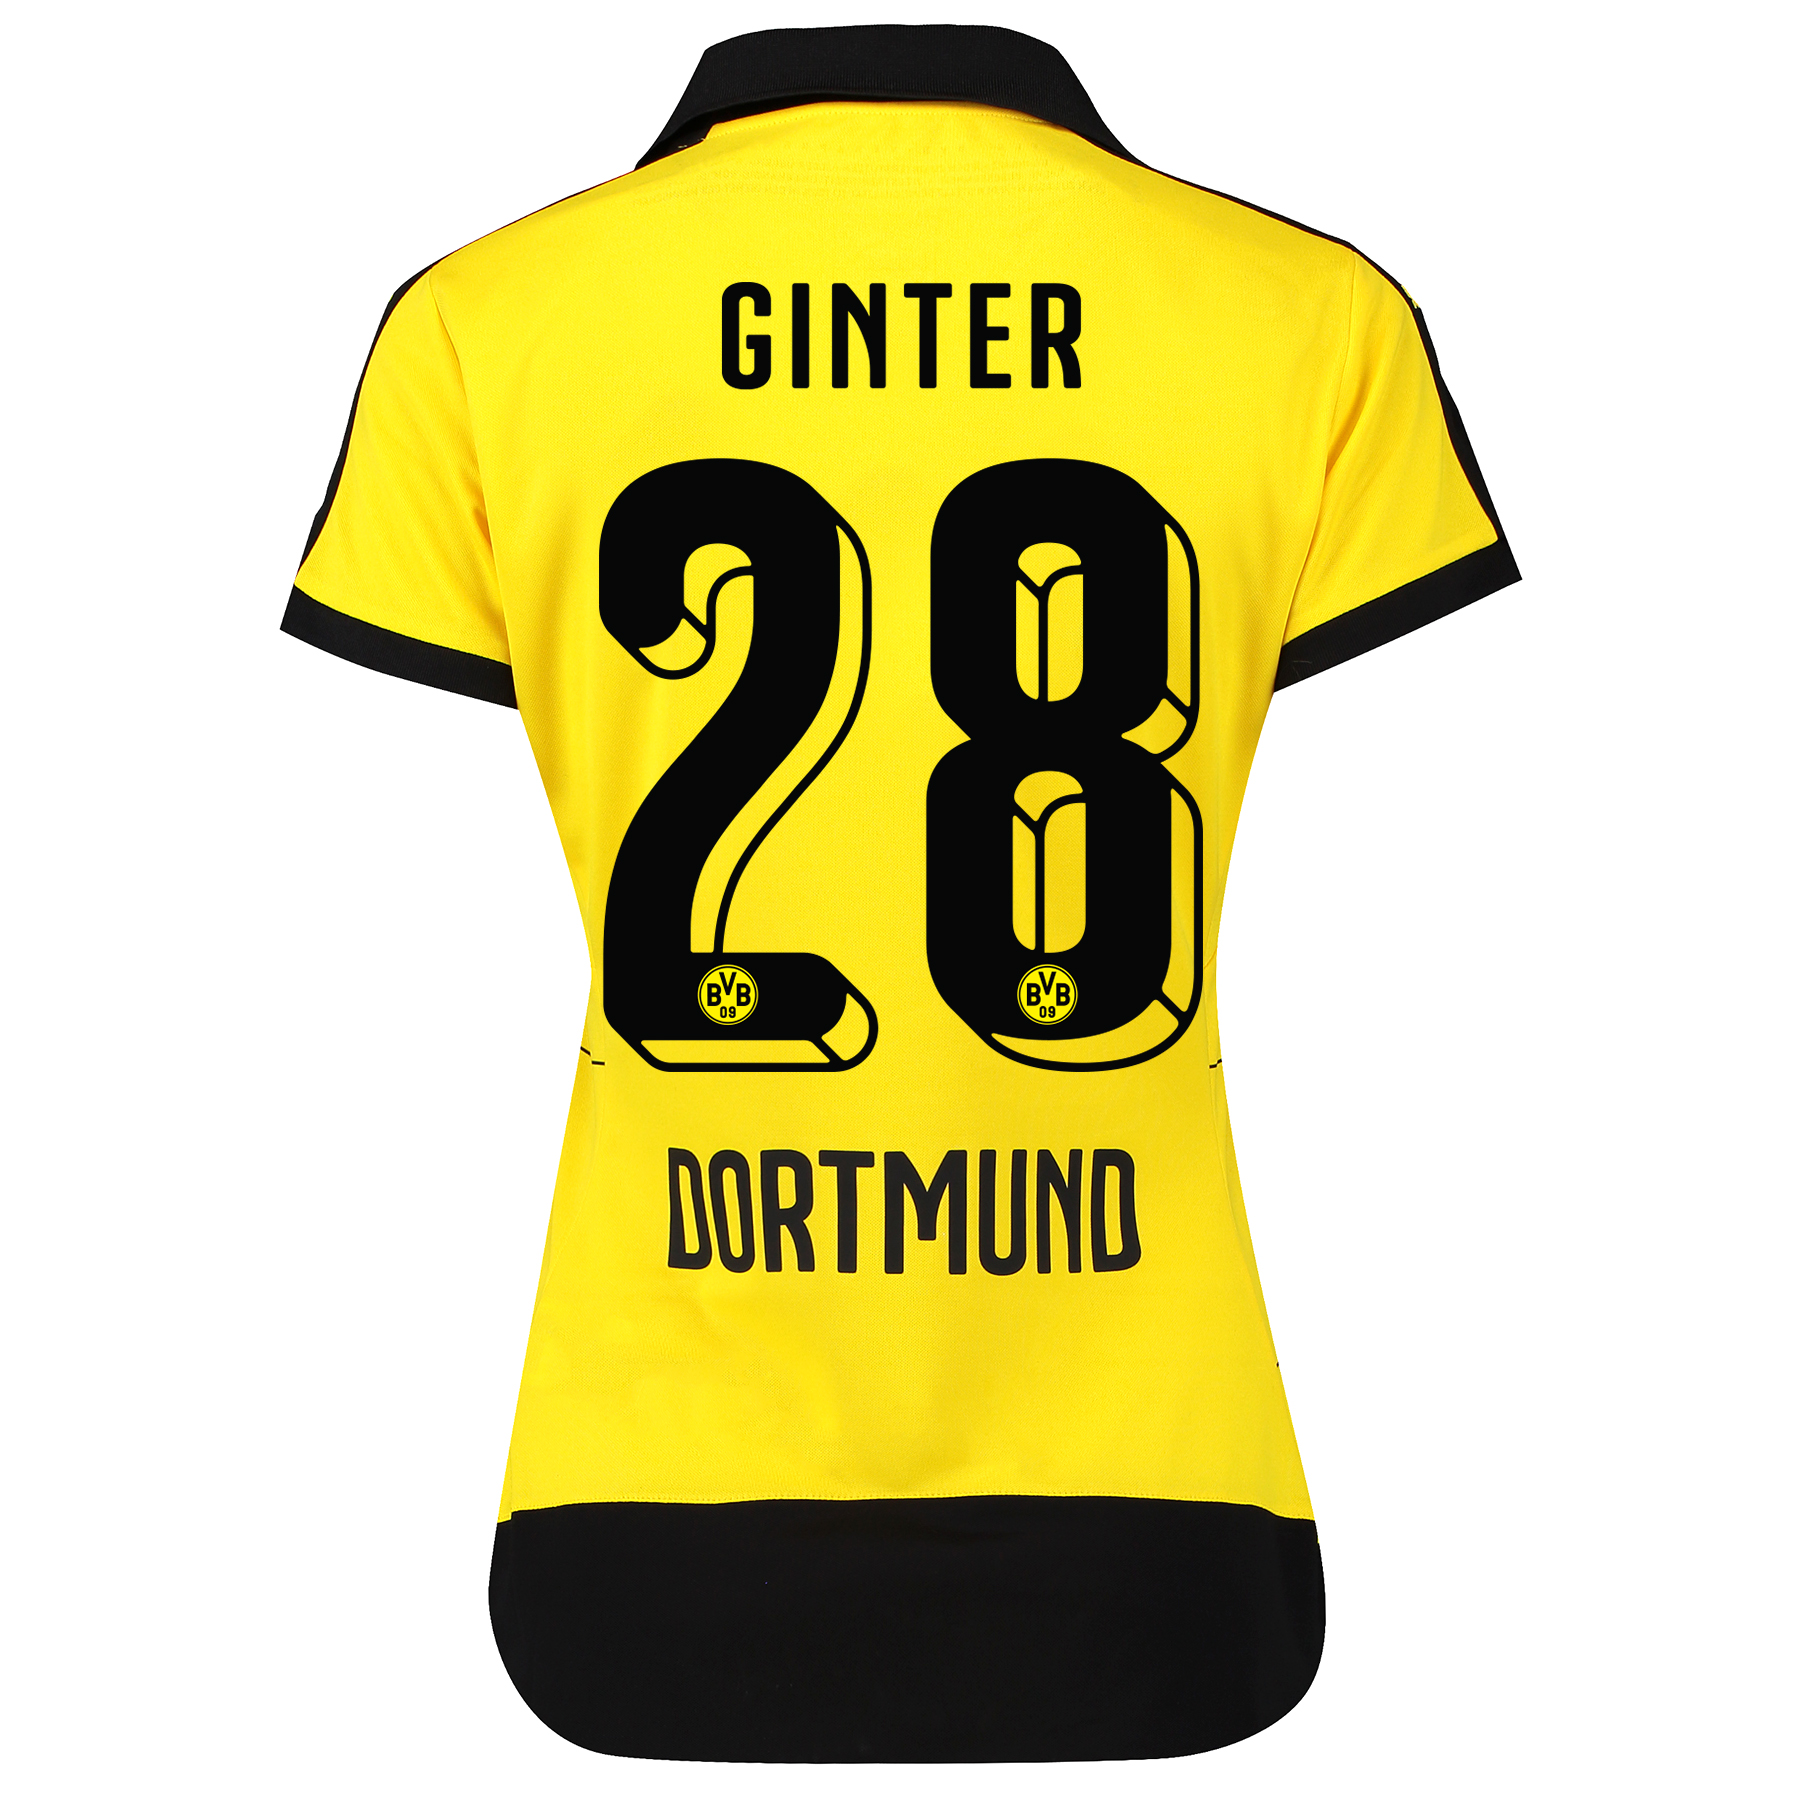 BVB Home Shirt 2015/16 - Womens with Sponsor Yellow with Matthias Gint